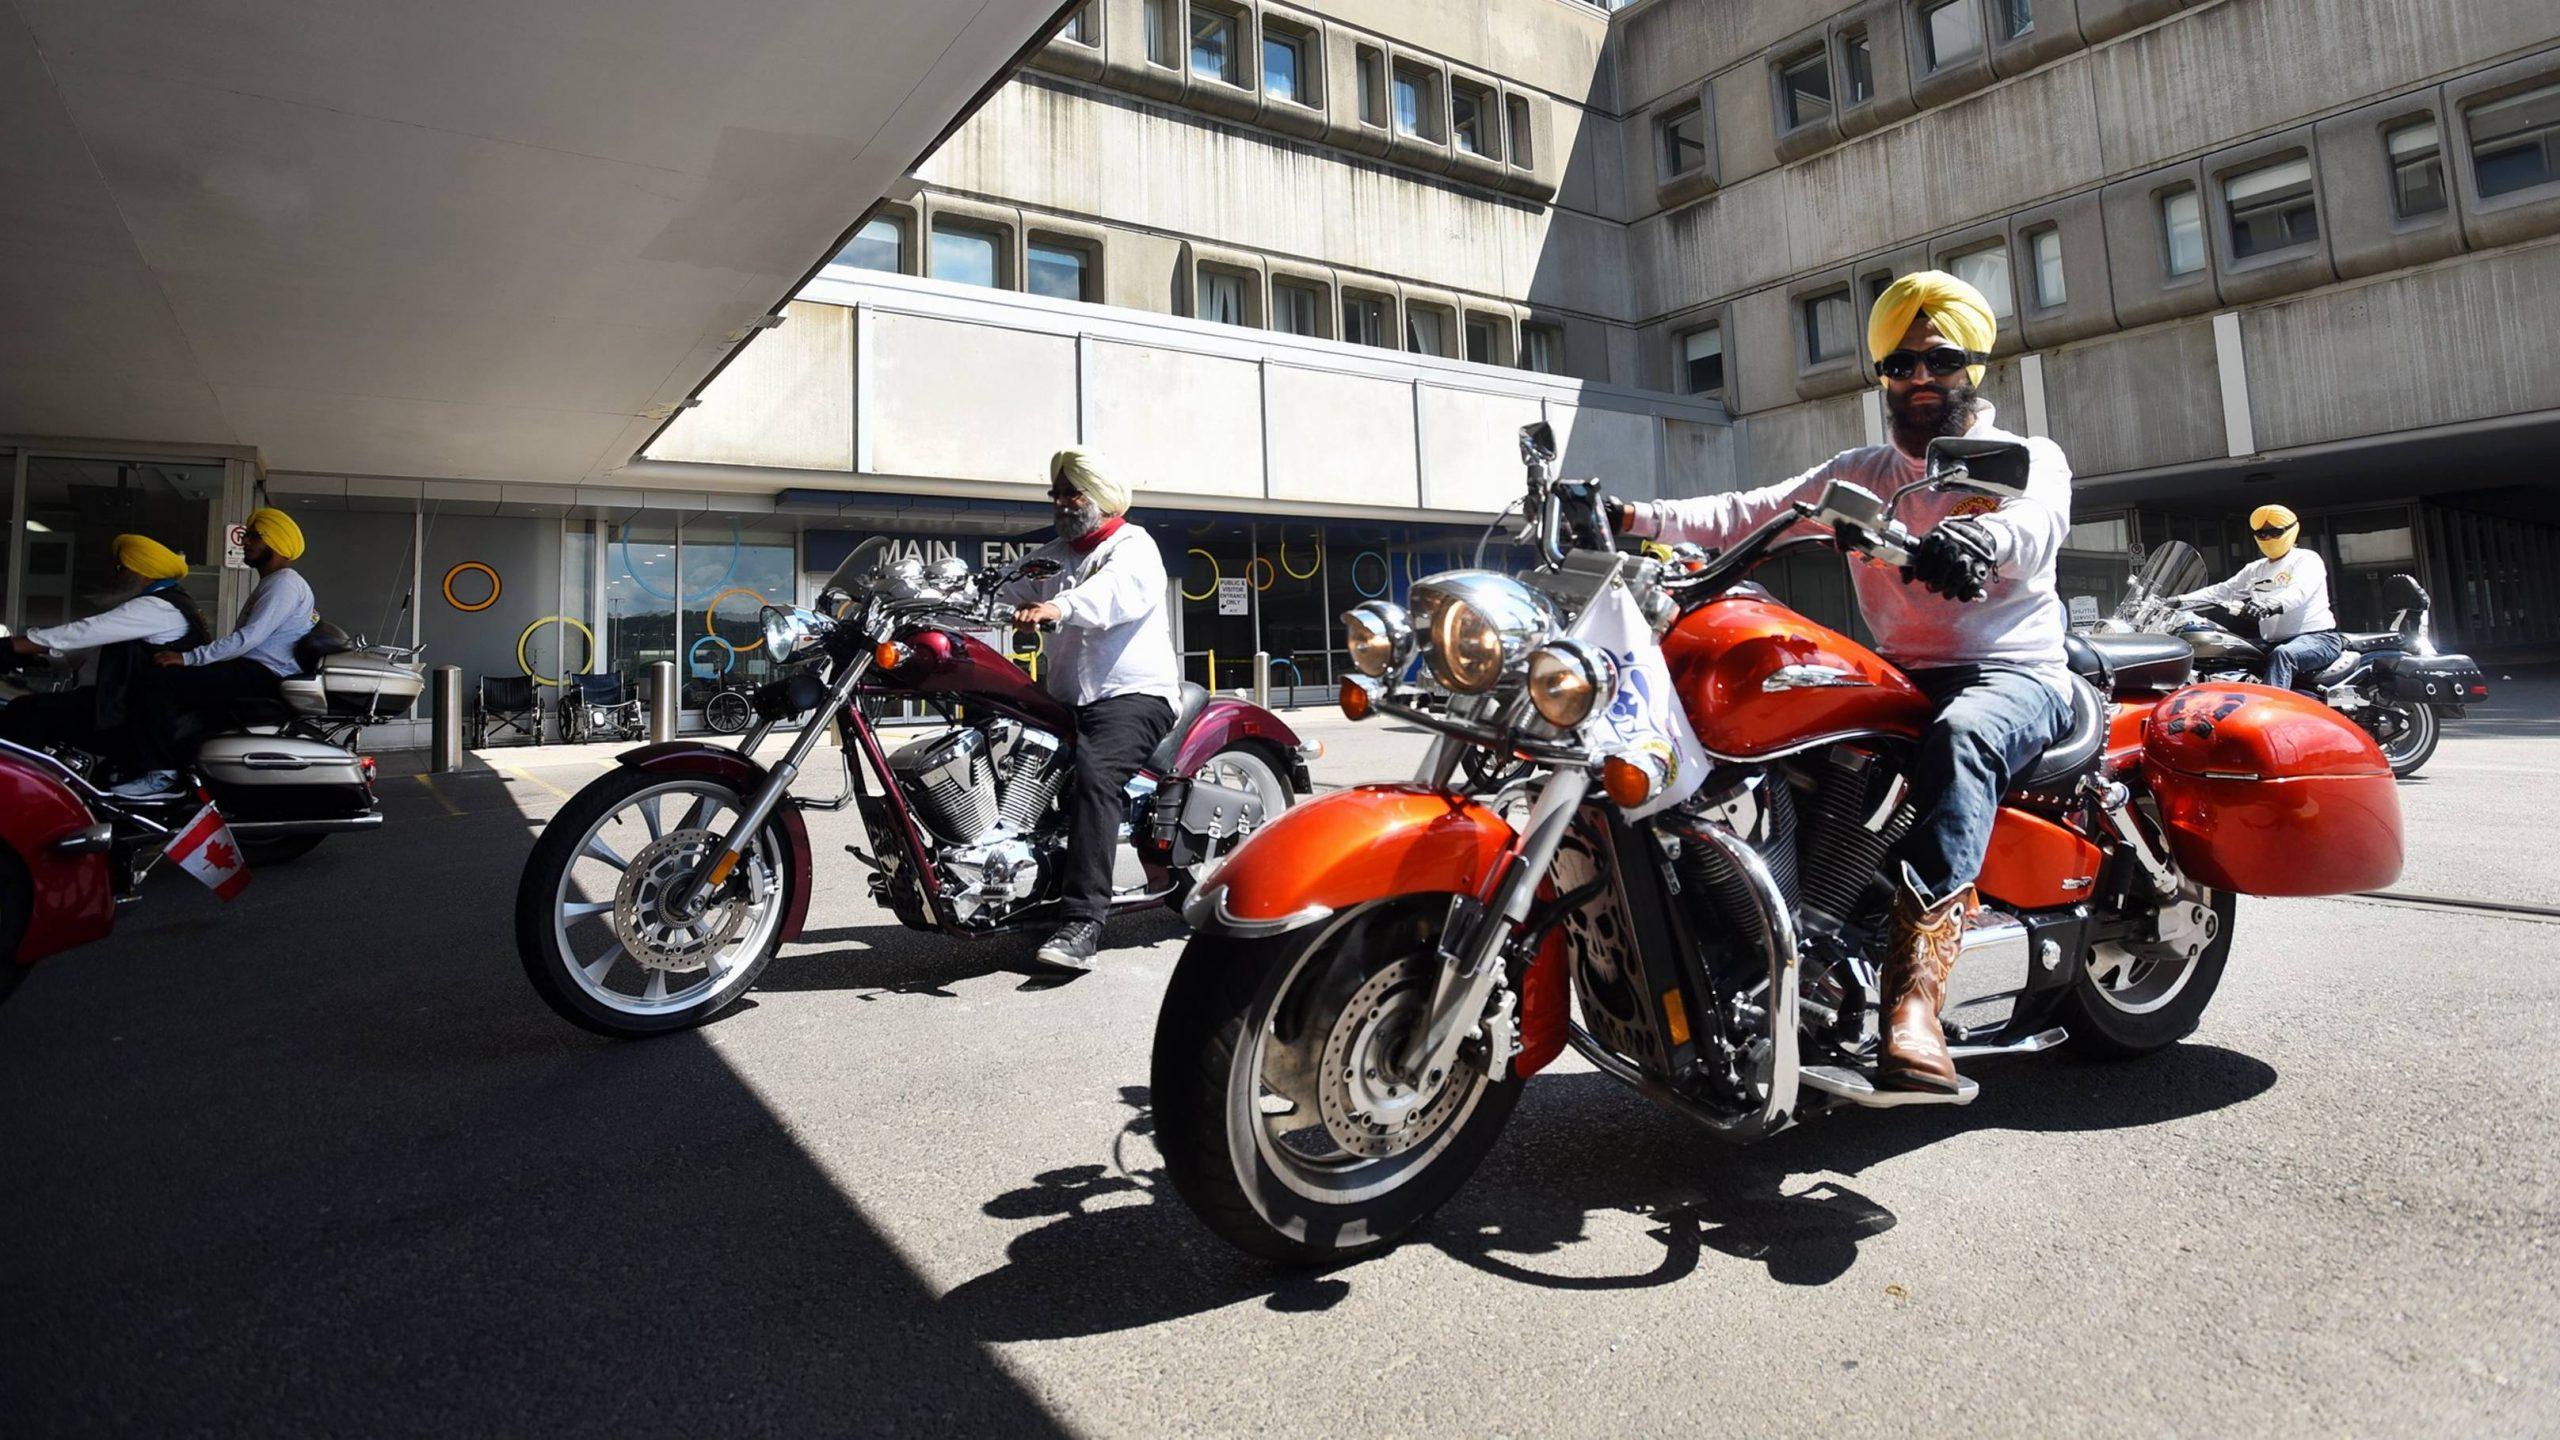 Turbans and Motorcycles